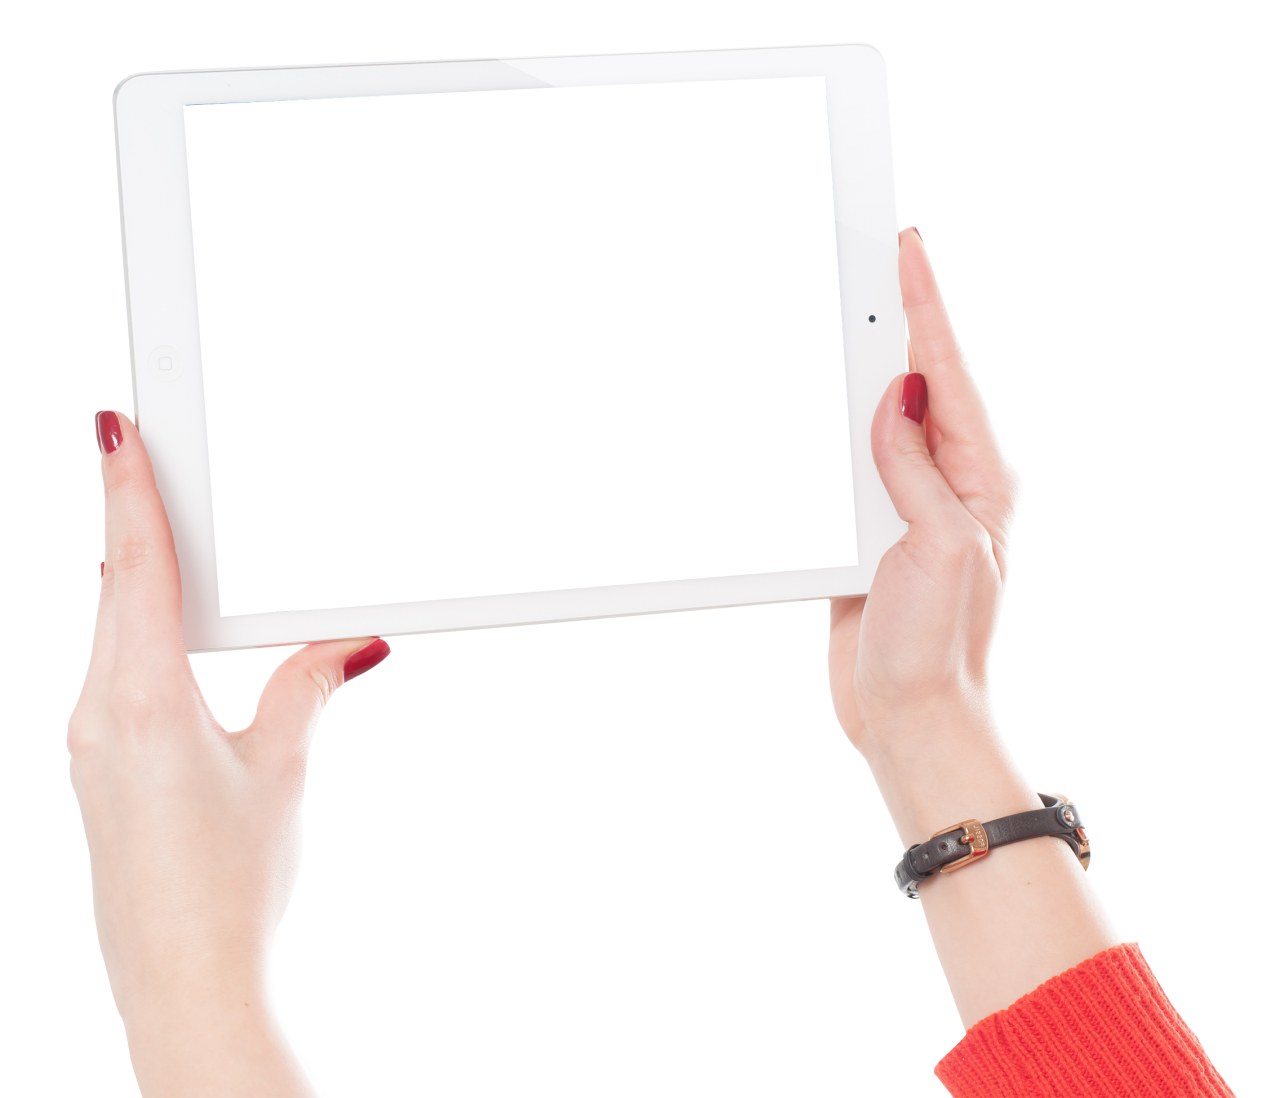 Ipad Hand Png - Woman Hands Holding iPad PNG Image - PurePNG | Free transparent ...